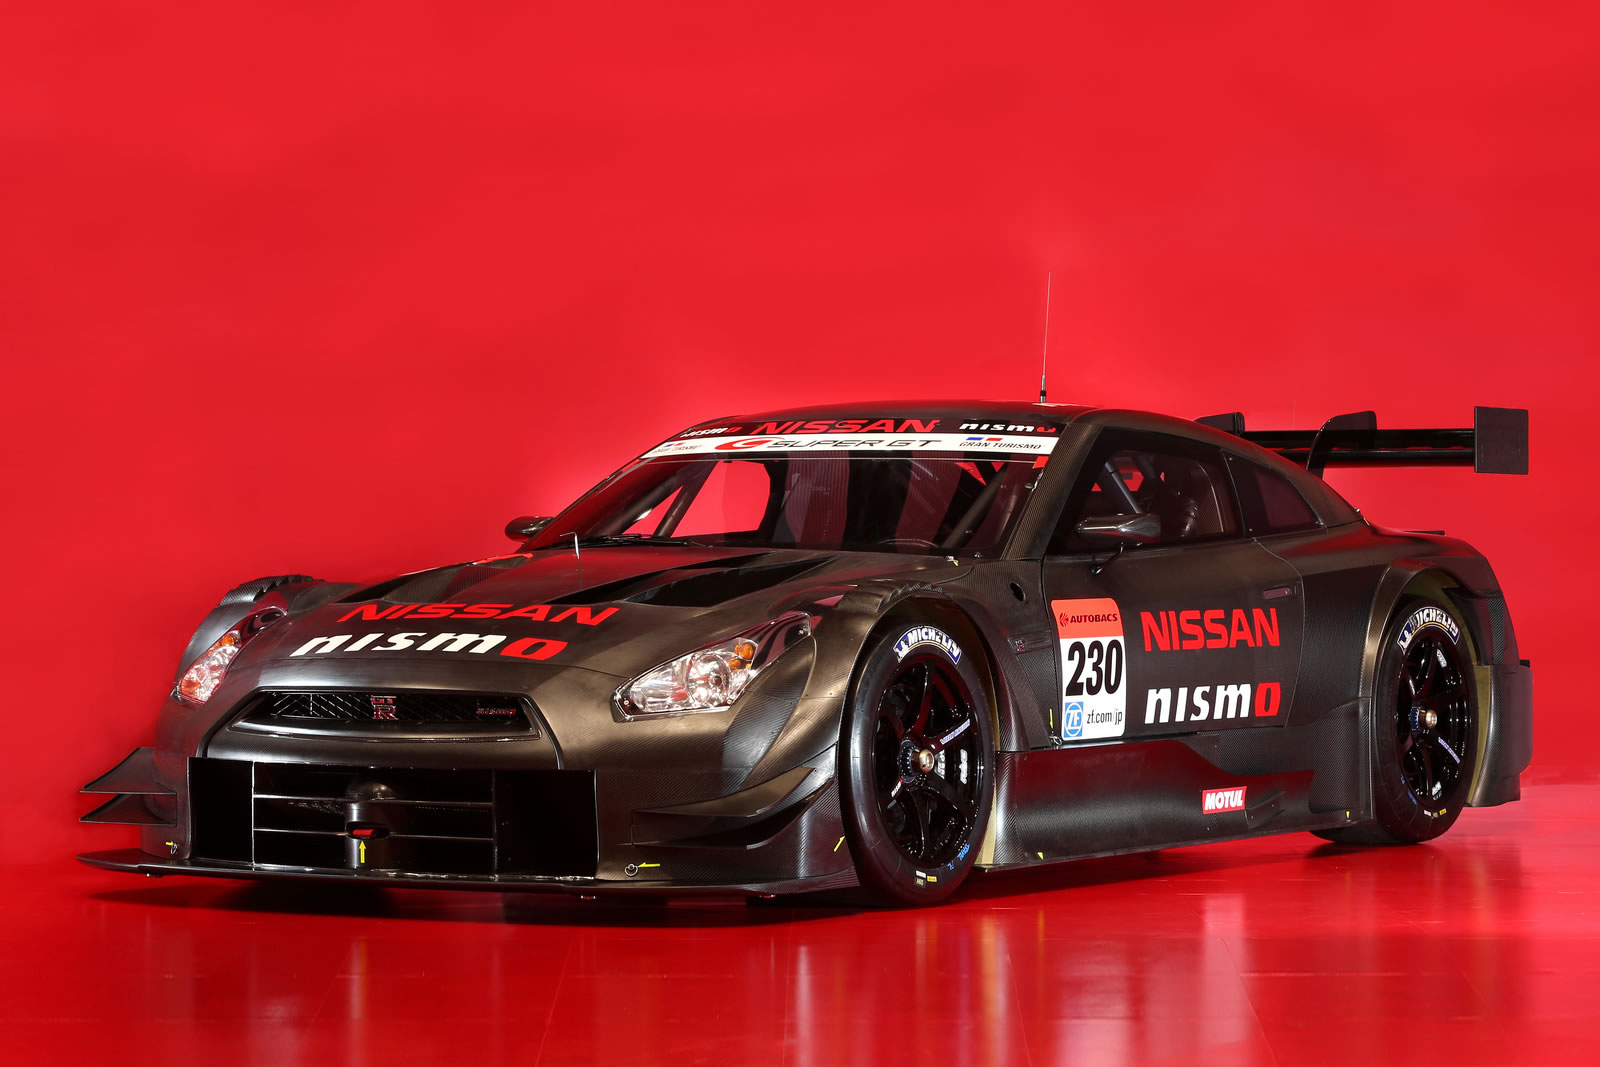 2014 Nissan Gt R Nismo Gt500 Race Car Front Photo